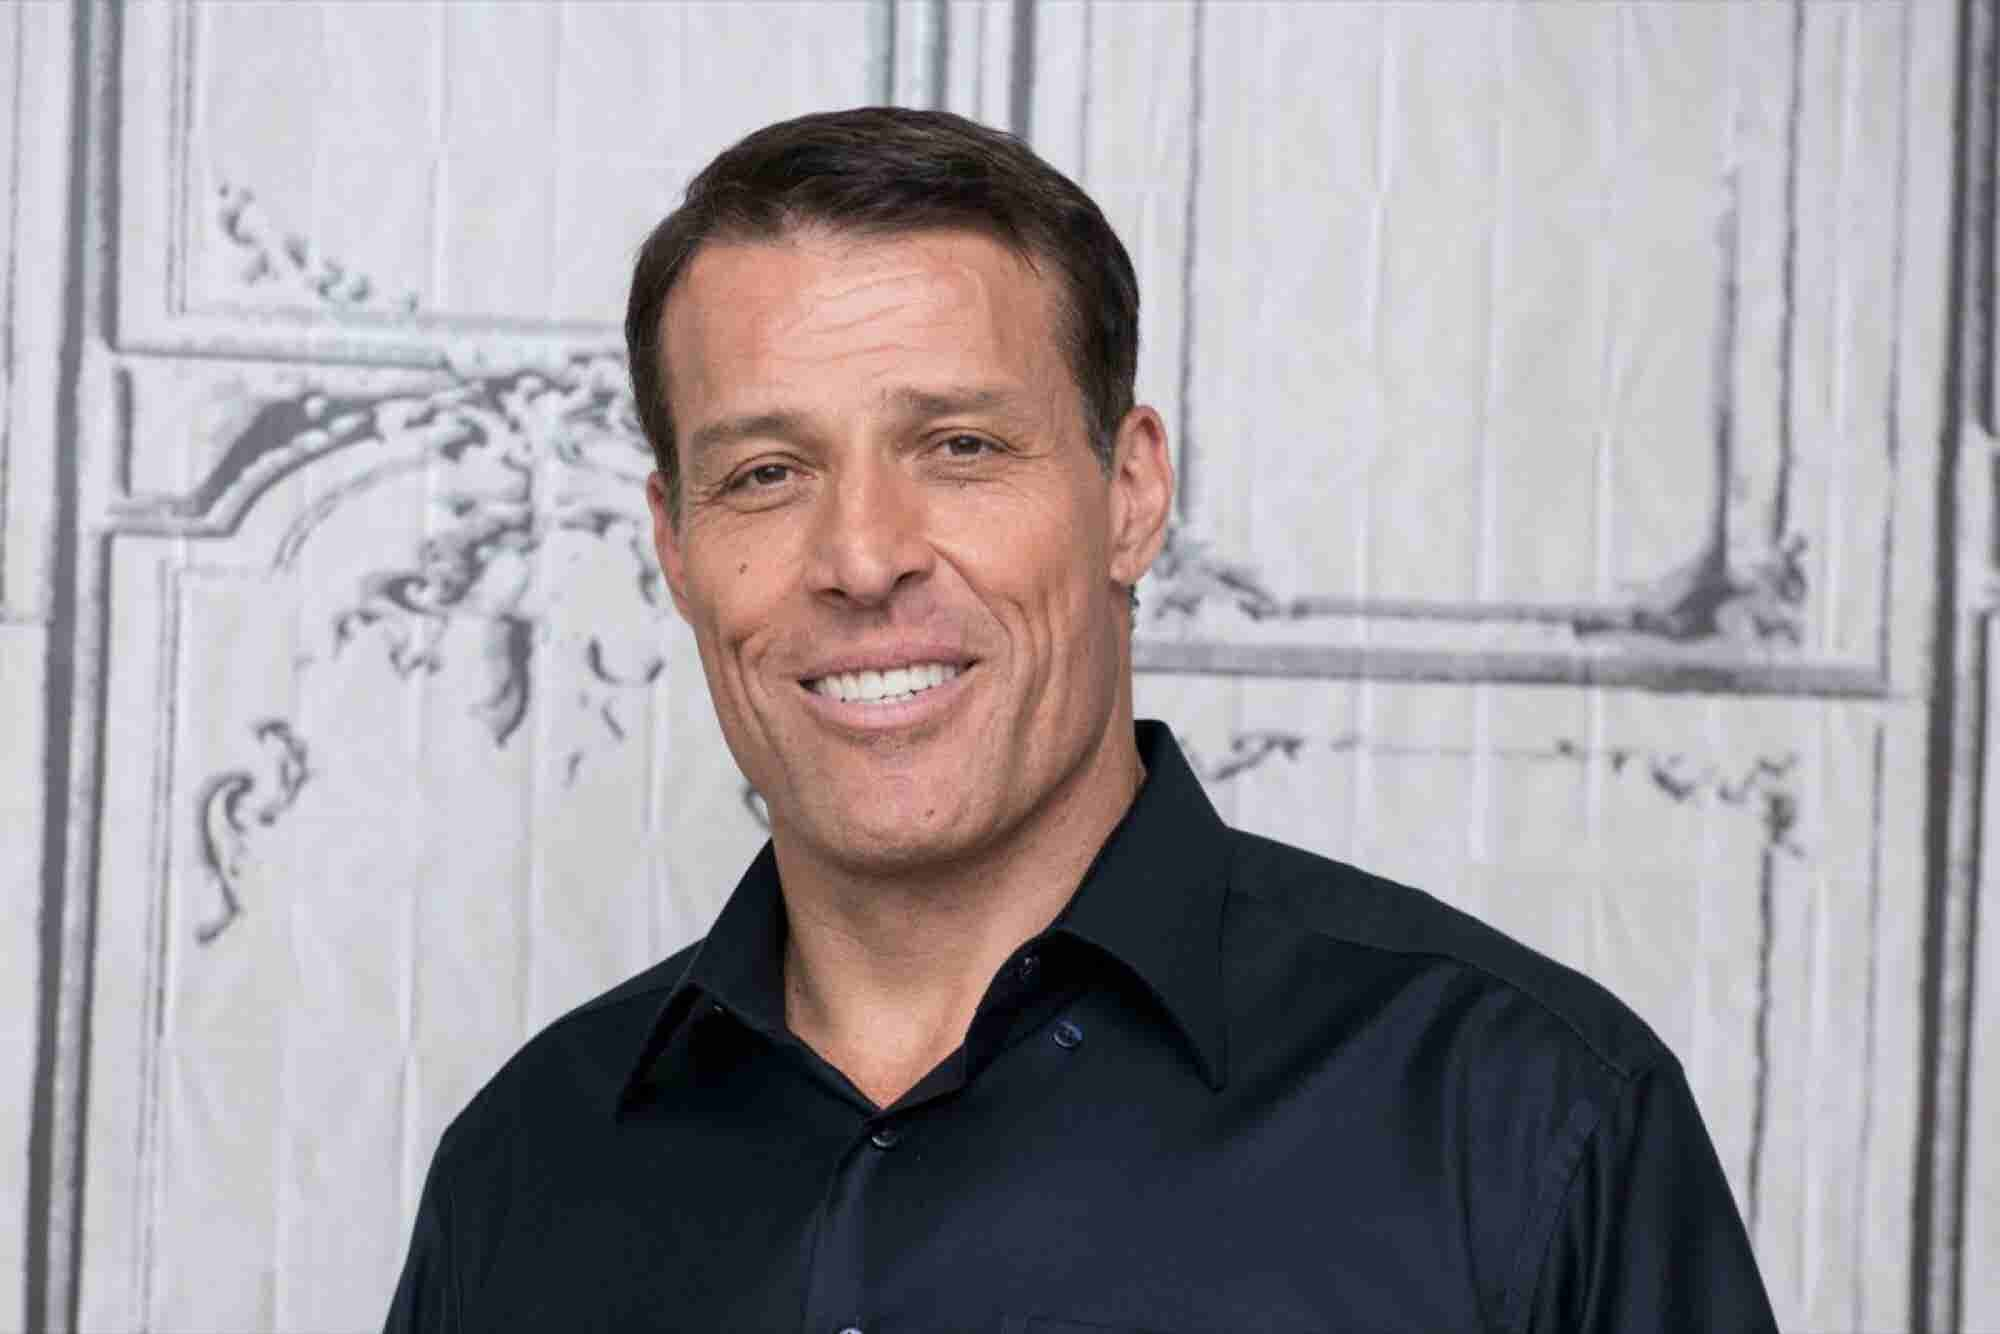 Life Coaching Guru Tony Robbins Tells Us Why He's Investing in an AI C...